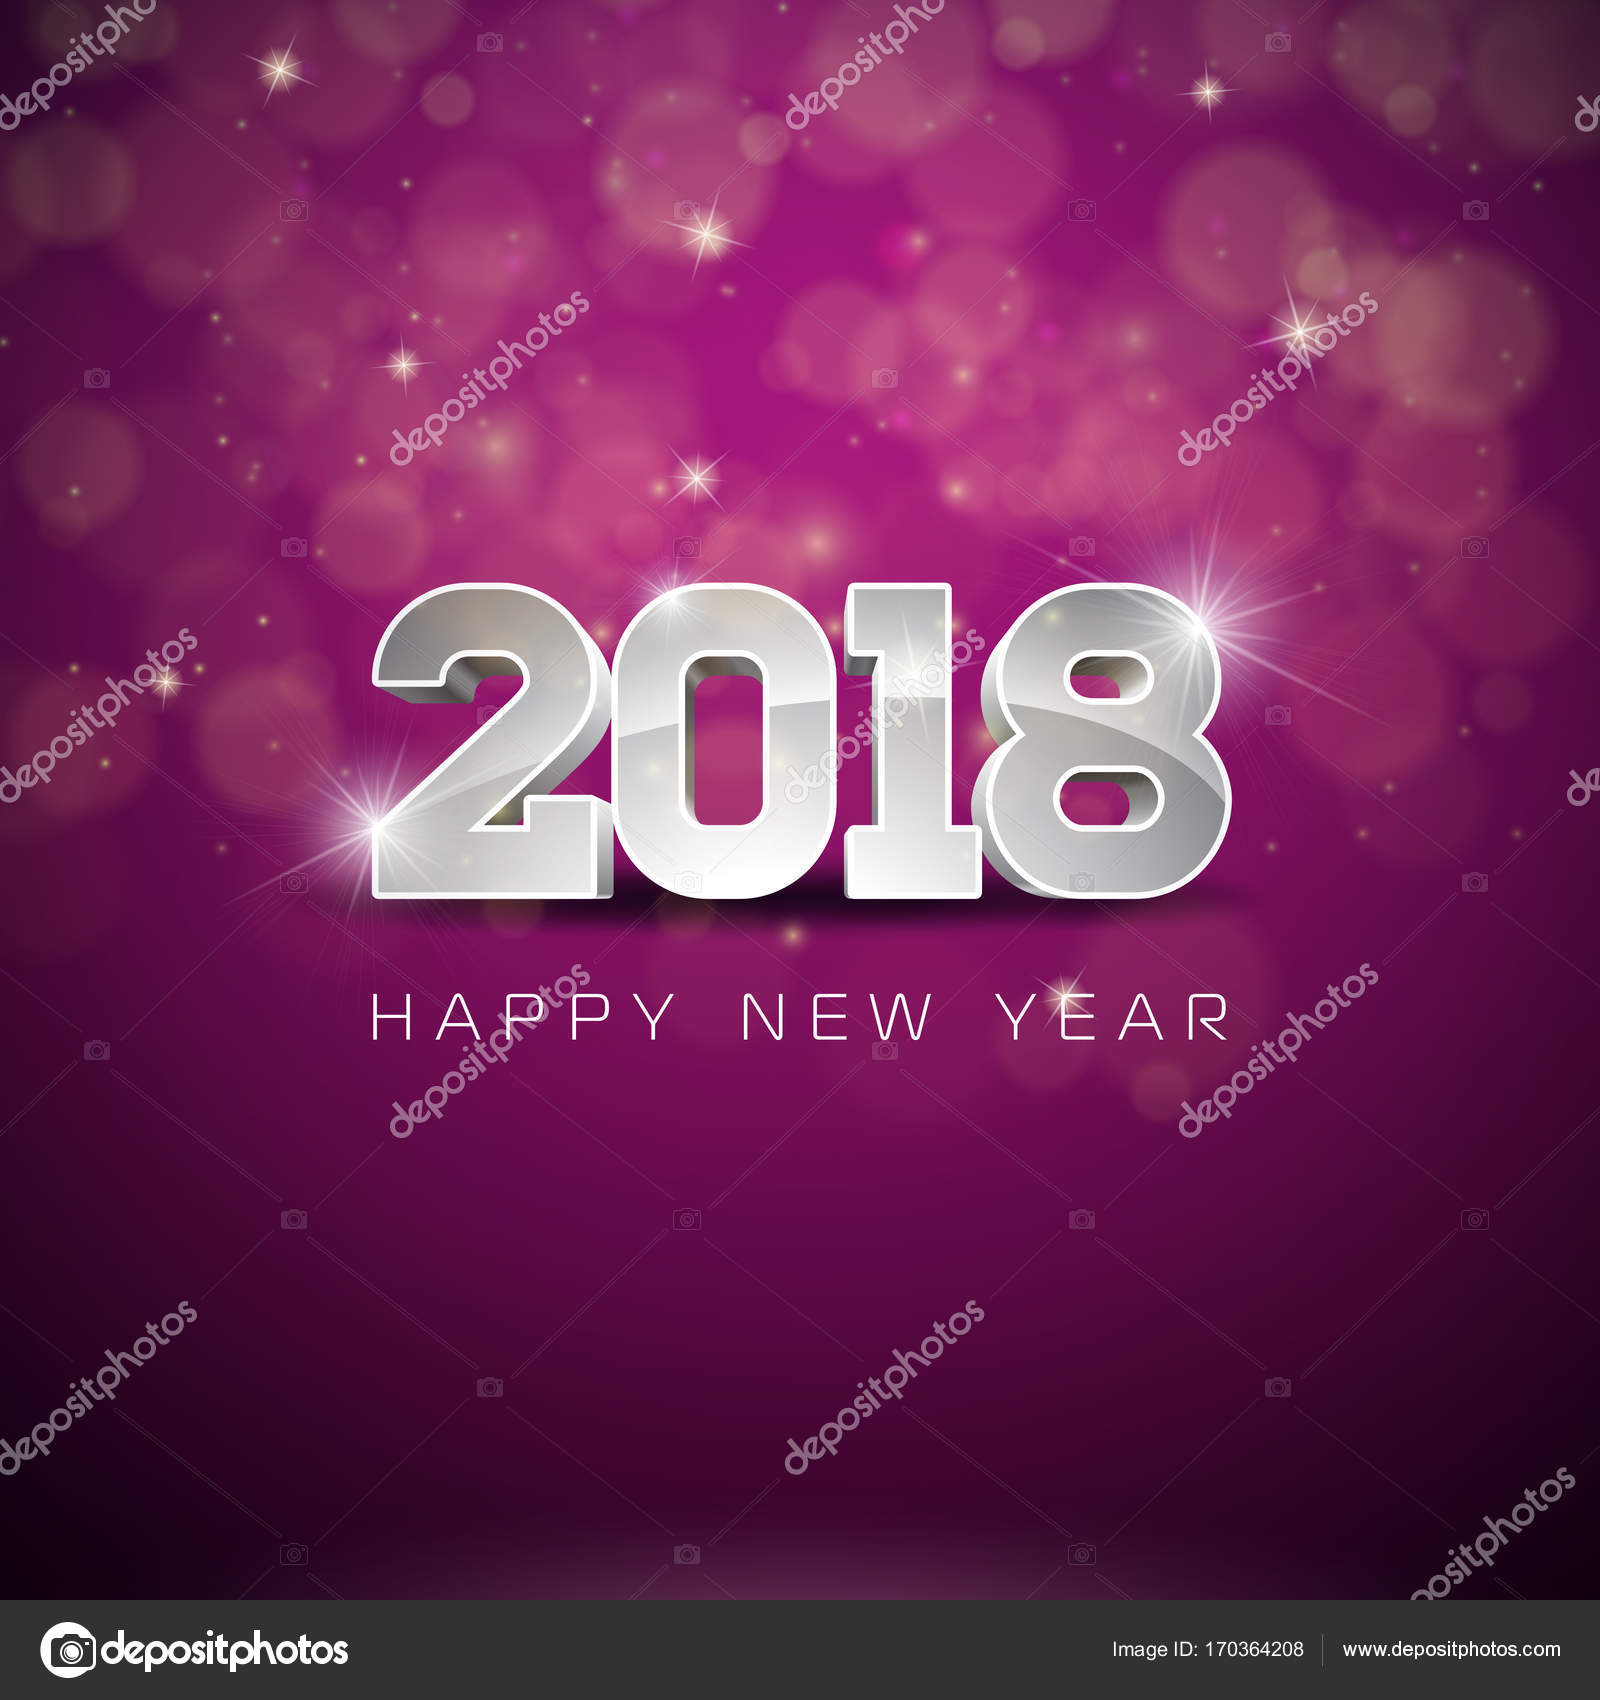 vector happy new year 2018 illustration on shiny lighting background with typography design stock